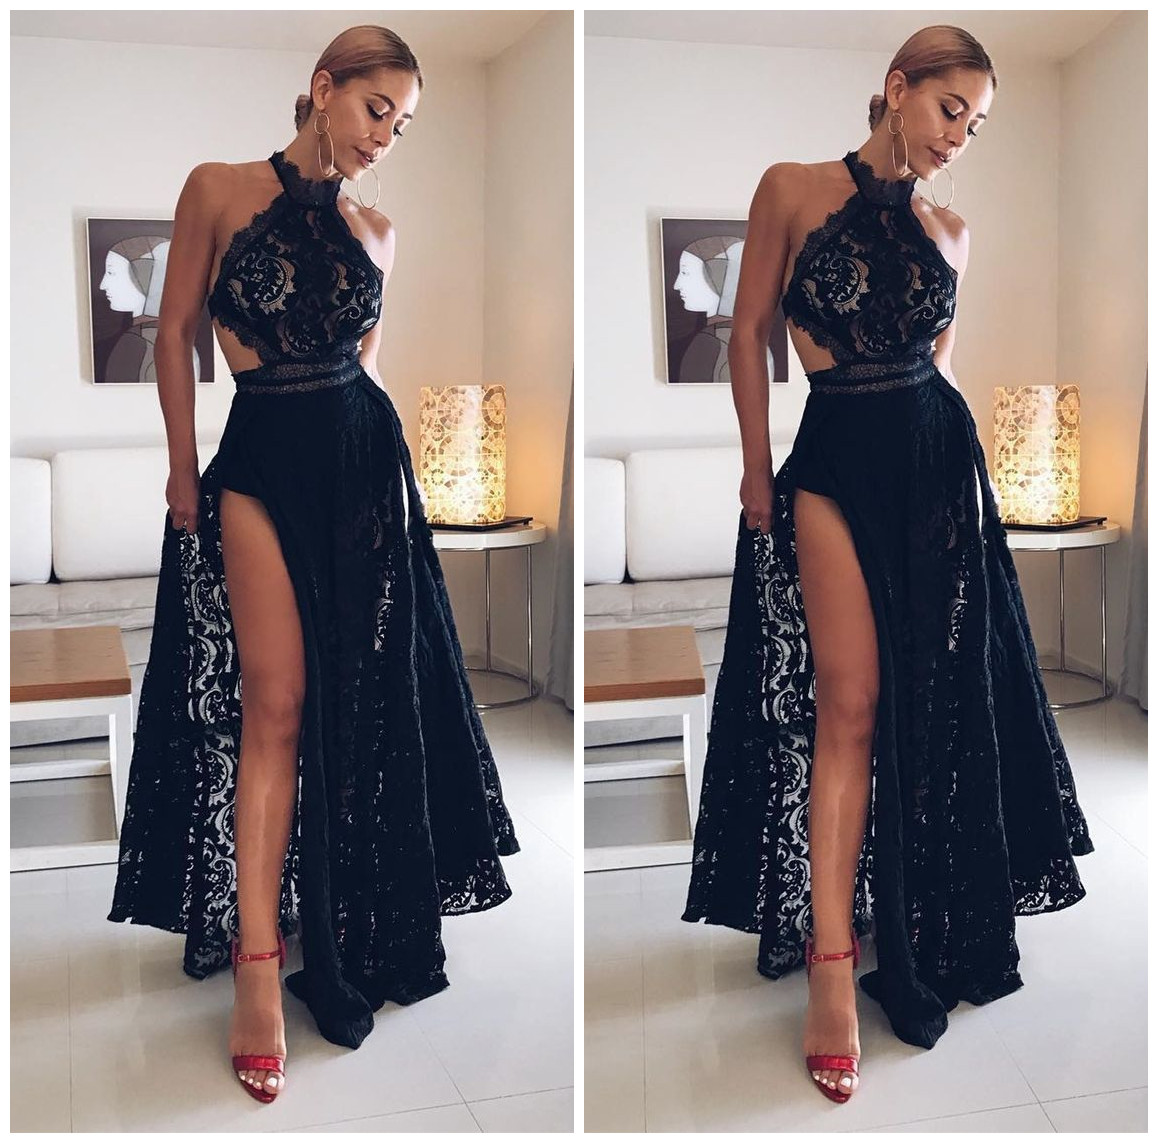 c6e710c5d5 Sexy Black High Slit Lace Halter Evening Party Prom Dresses,Backless Lace  Floor Length Prom Dresses